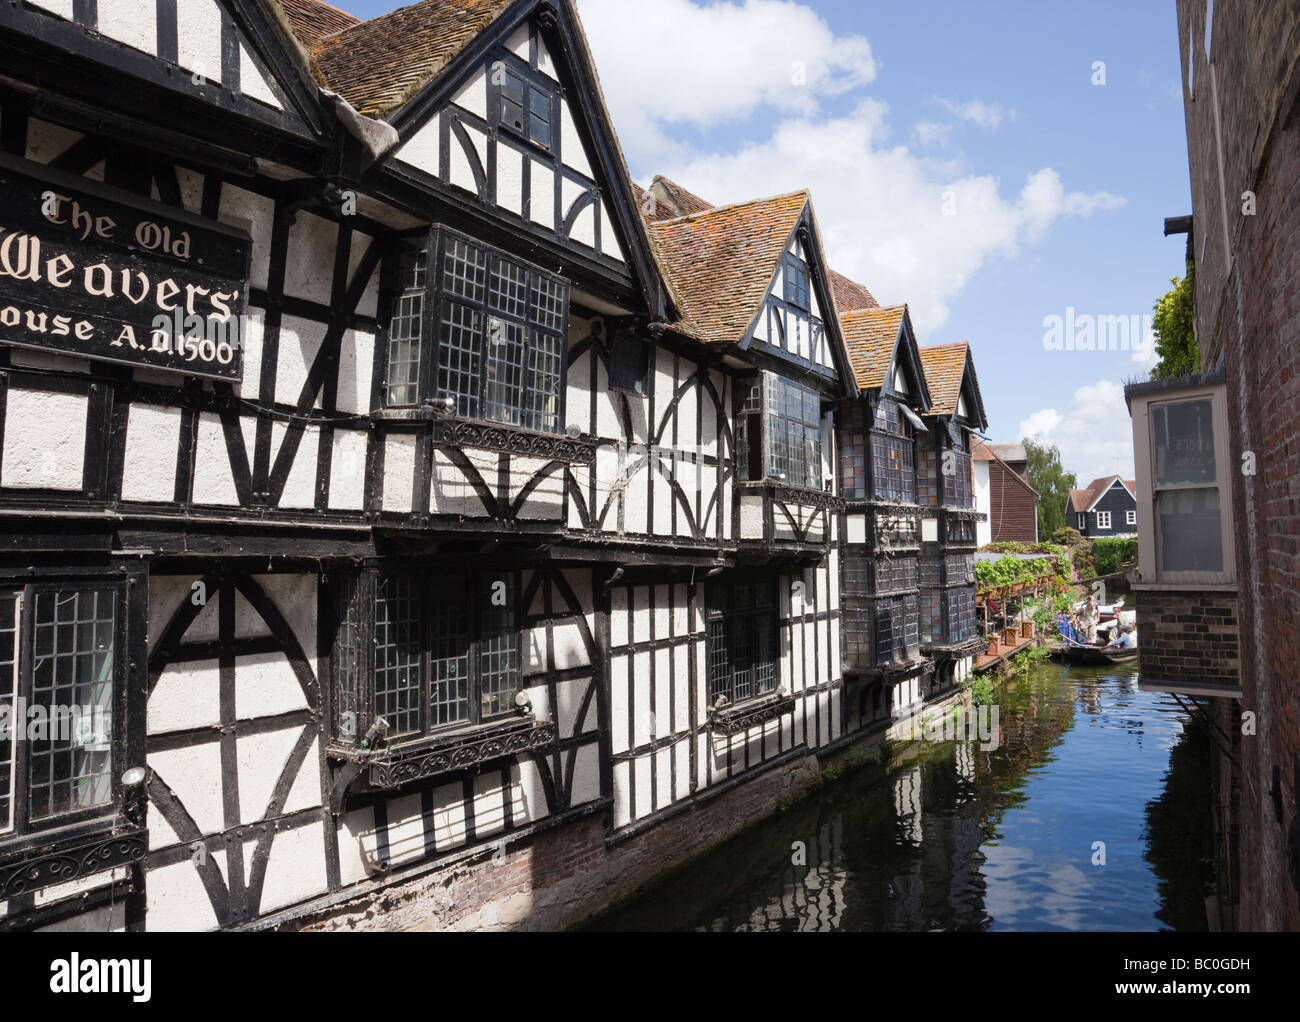 Canterbury Kent England UK 16th century Old Weavers House timber framed building beside River Stour in city centre - Stock Image